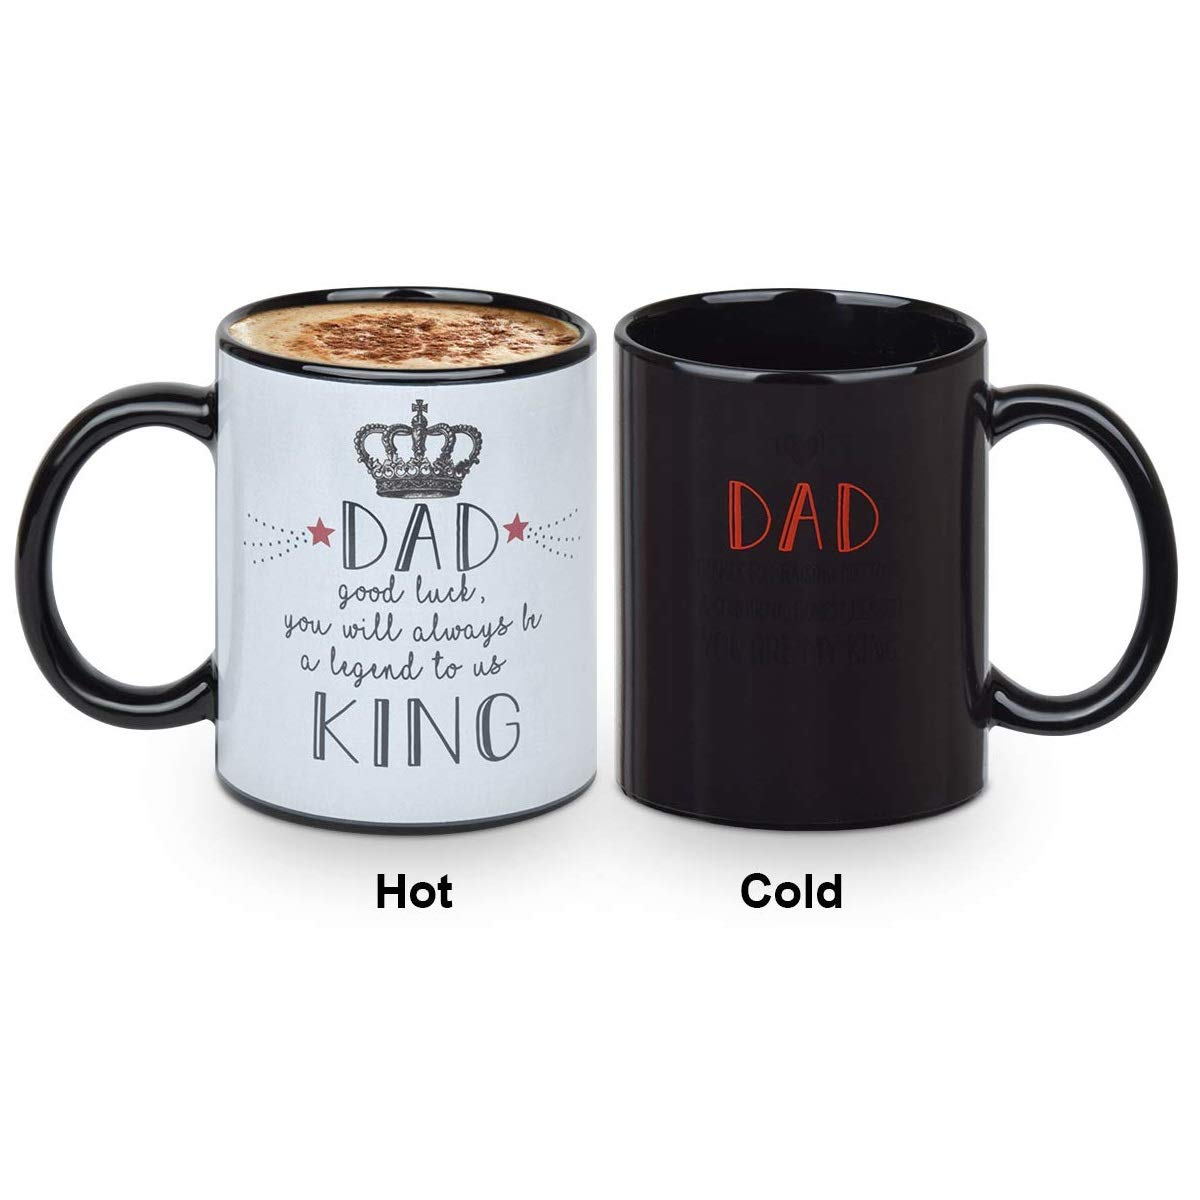 Father's Day Gift - Heat Sensitive Coffee/Tea Mug 12 Ounce Ceramic Tea Cup with Funny Warm Regards, Ceramic Color Changing Coffee Mugs, Birthday Gifts for Dad